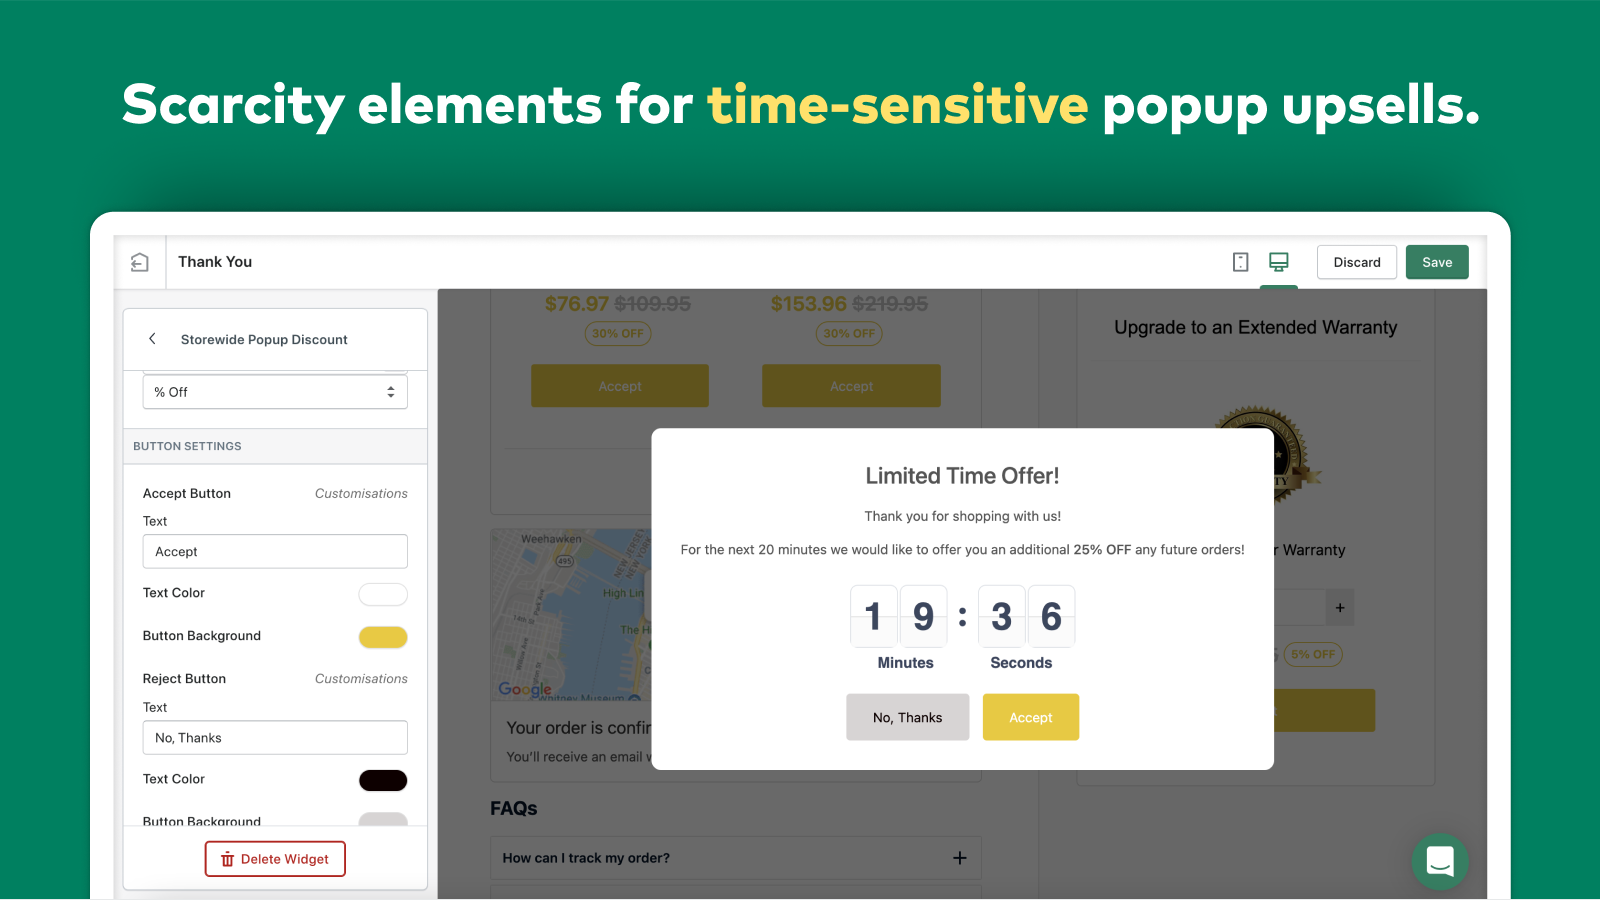 AfterSell Post Purchase Upsell Storewide Popup Discount